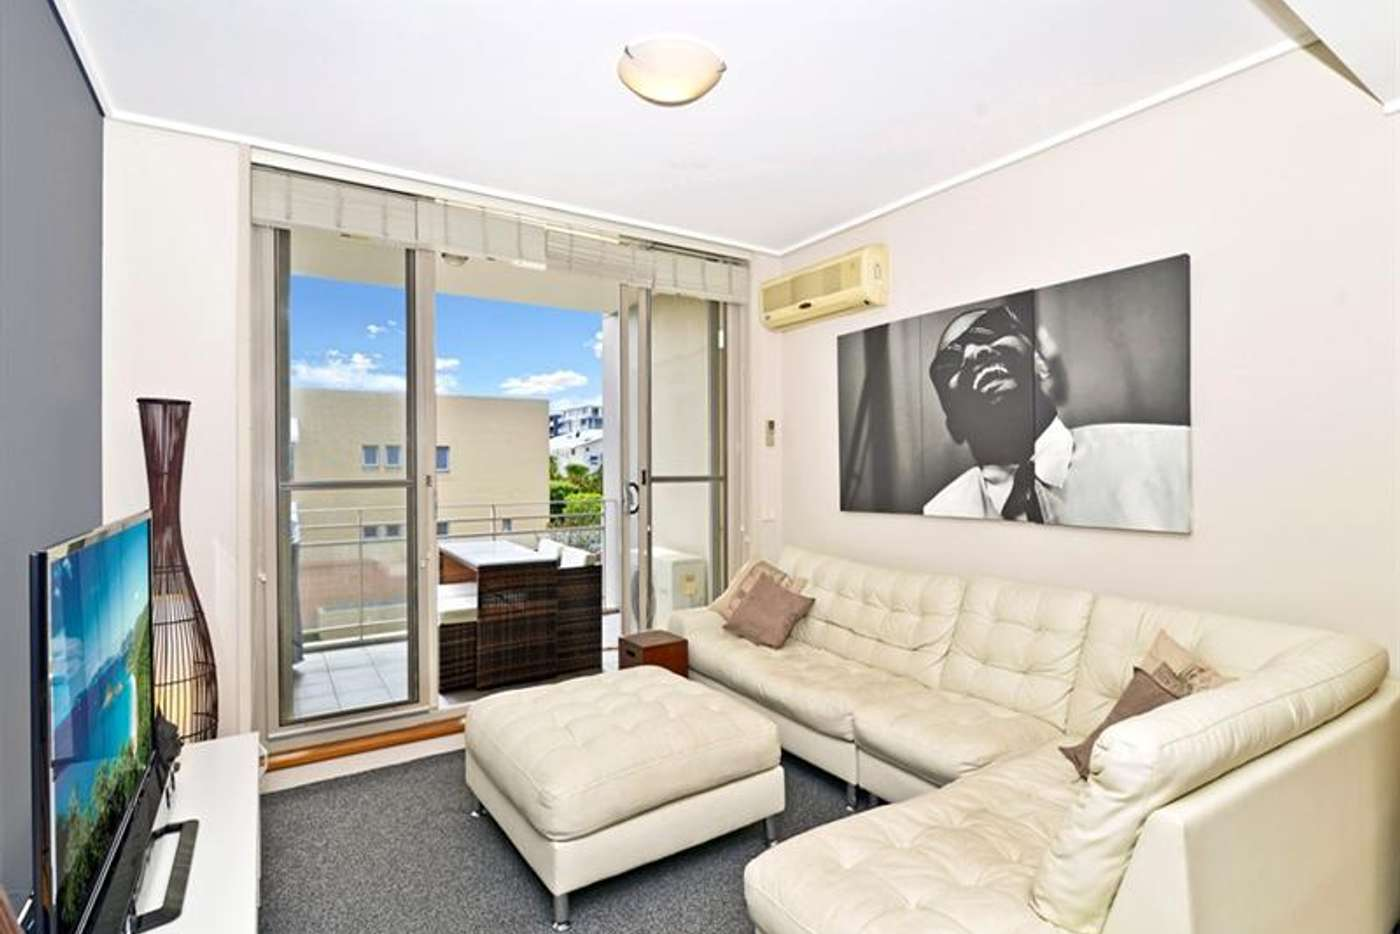 Main view of Homely apartment listing, 314/1 The Piazza, Wentworth Point NSW 2127